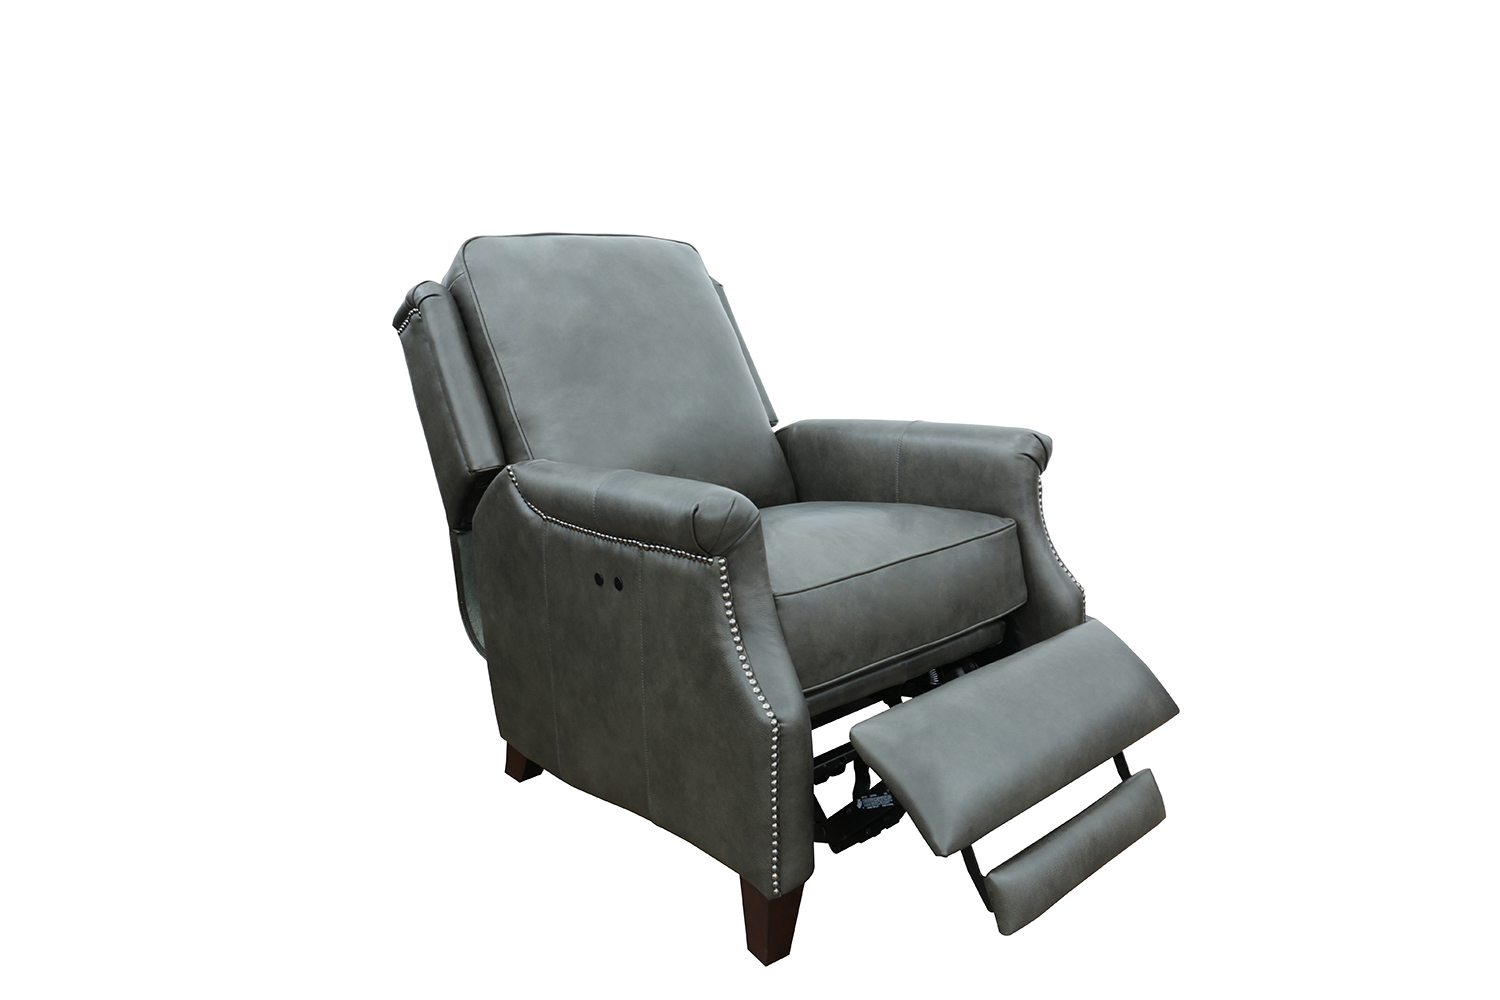 Barcalounger Riley Power Recliner Chair - Ashford Graphite/All Leather